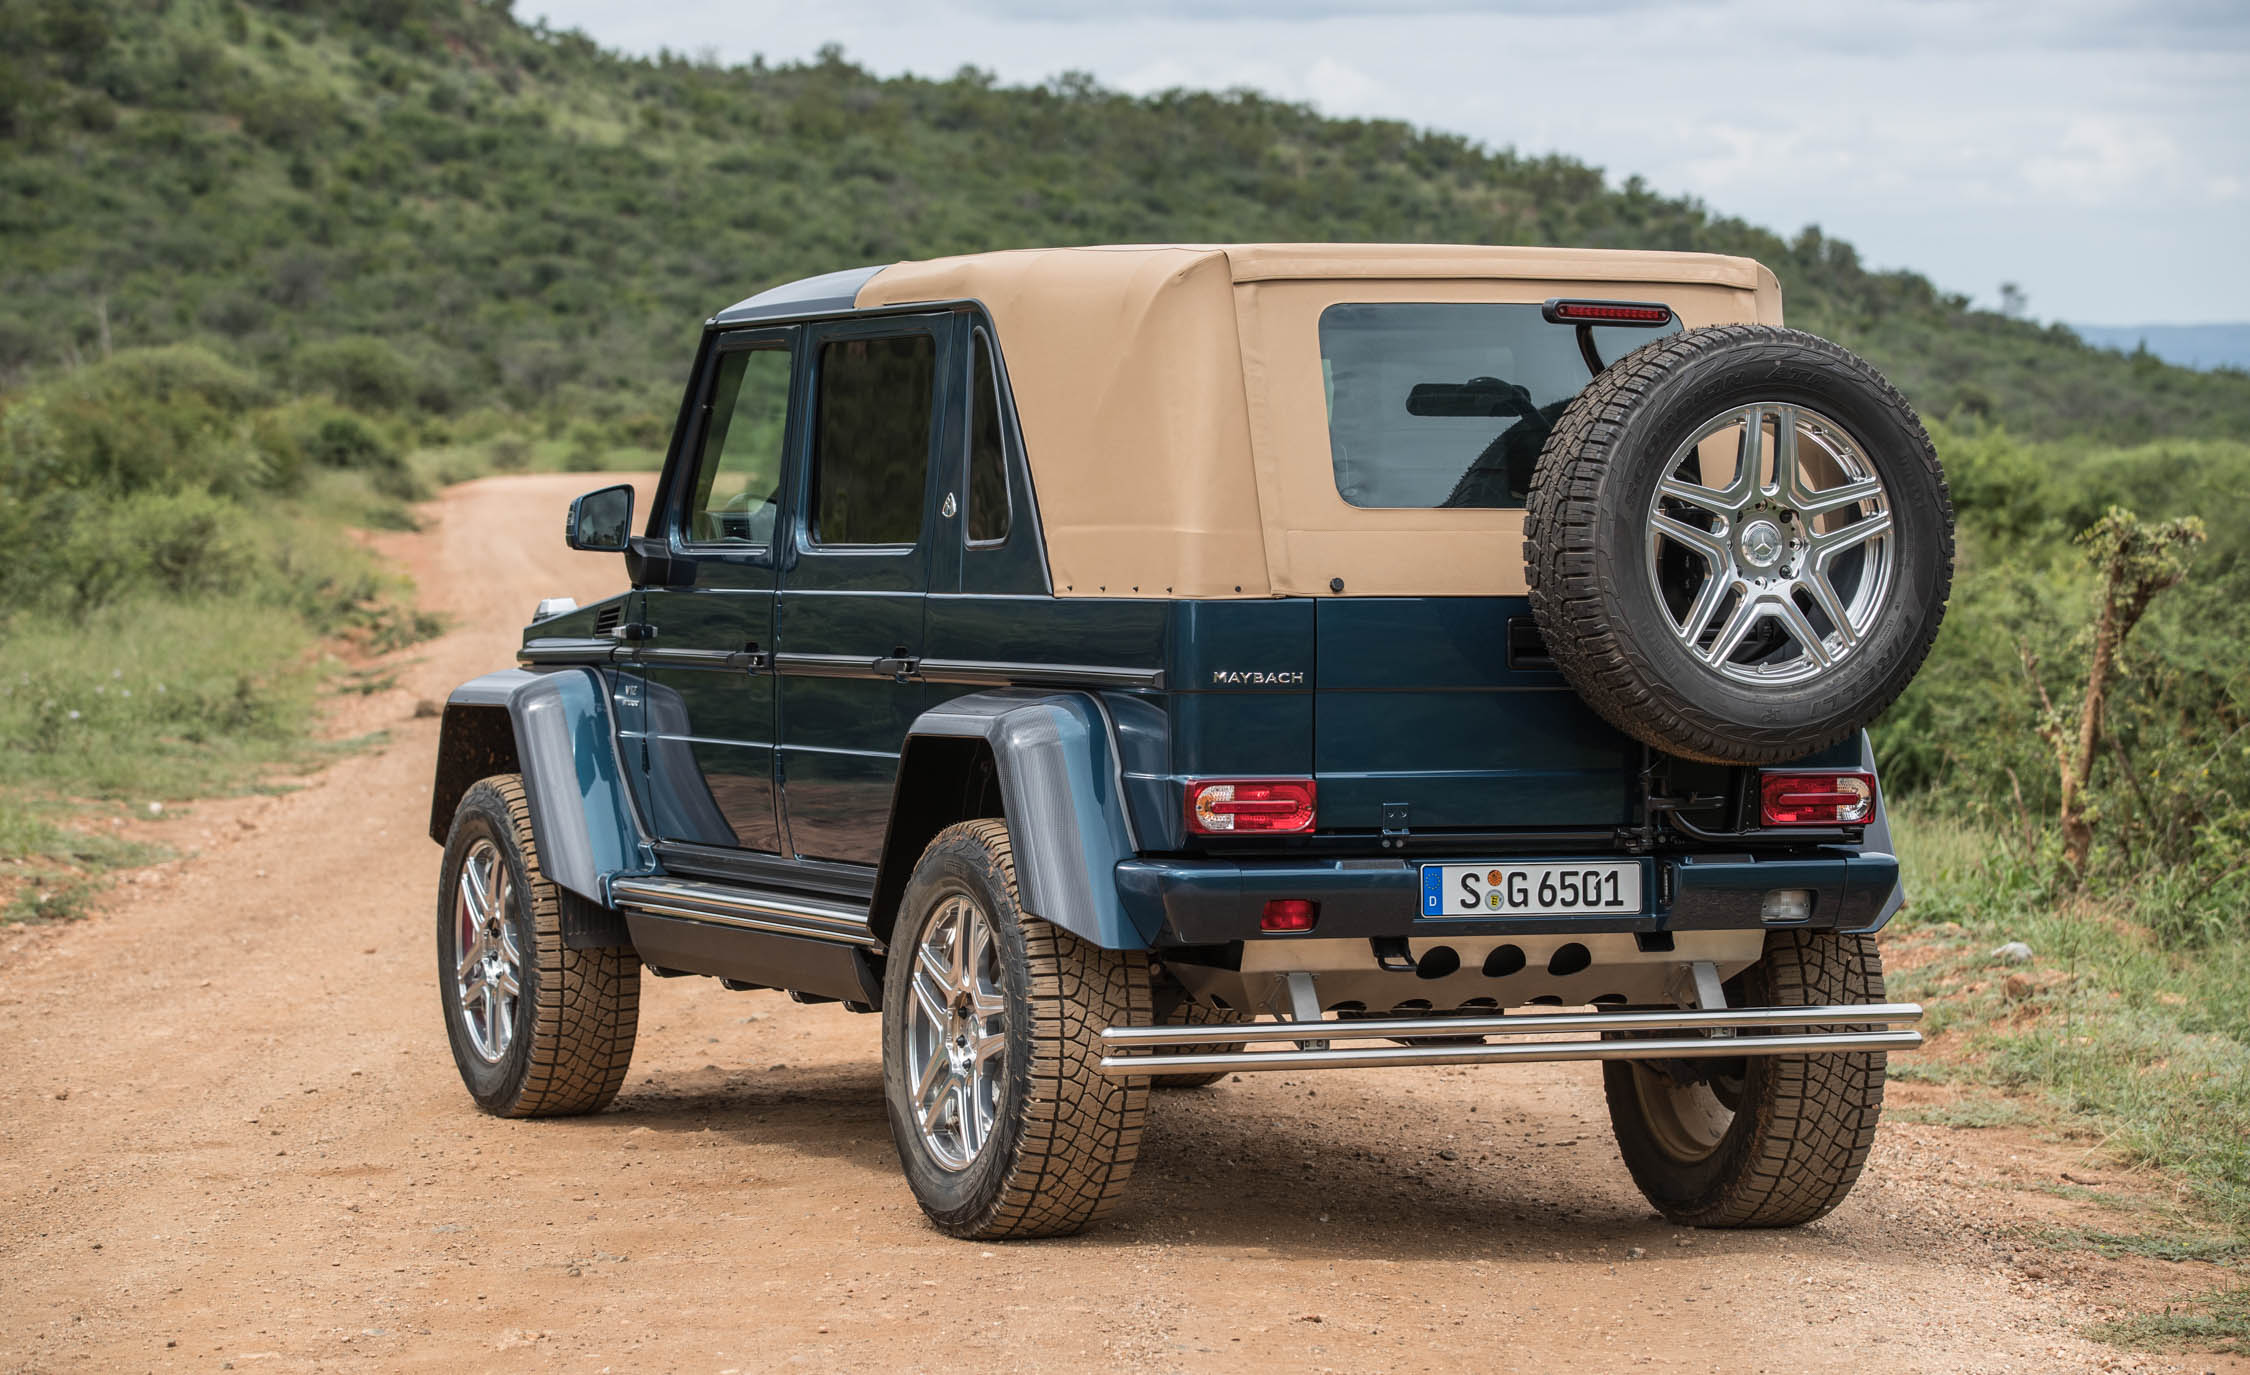 2018 Mercedes Maybach G650 Landaulet Exterior Side And Rear (Photo 8 of 52)